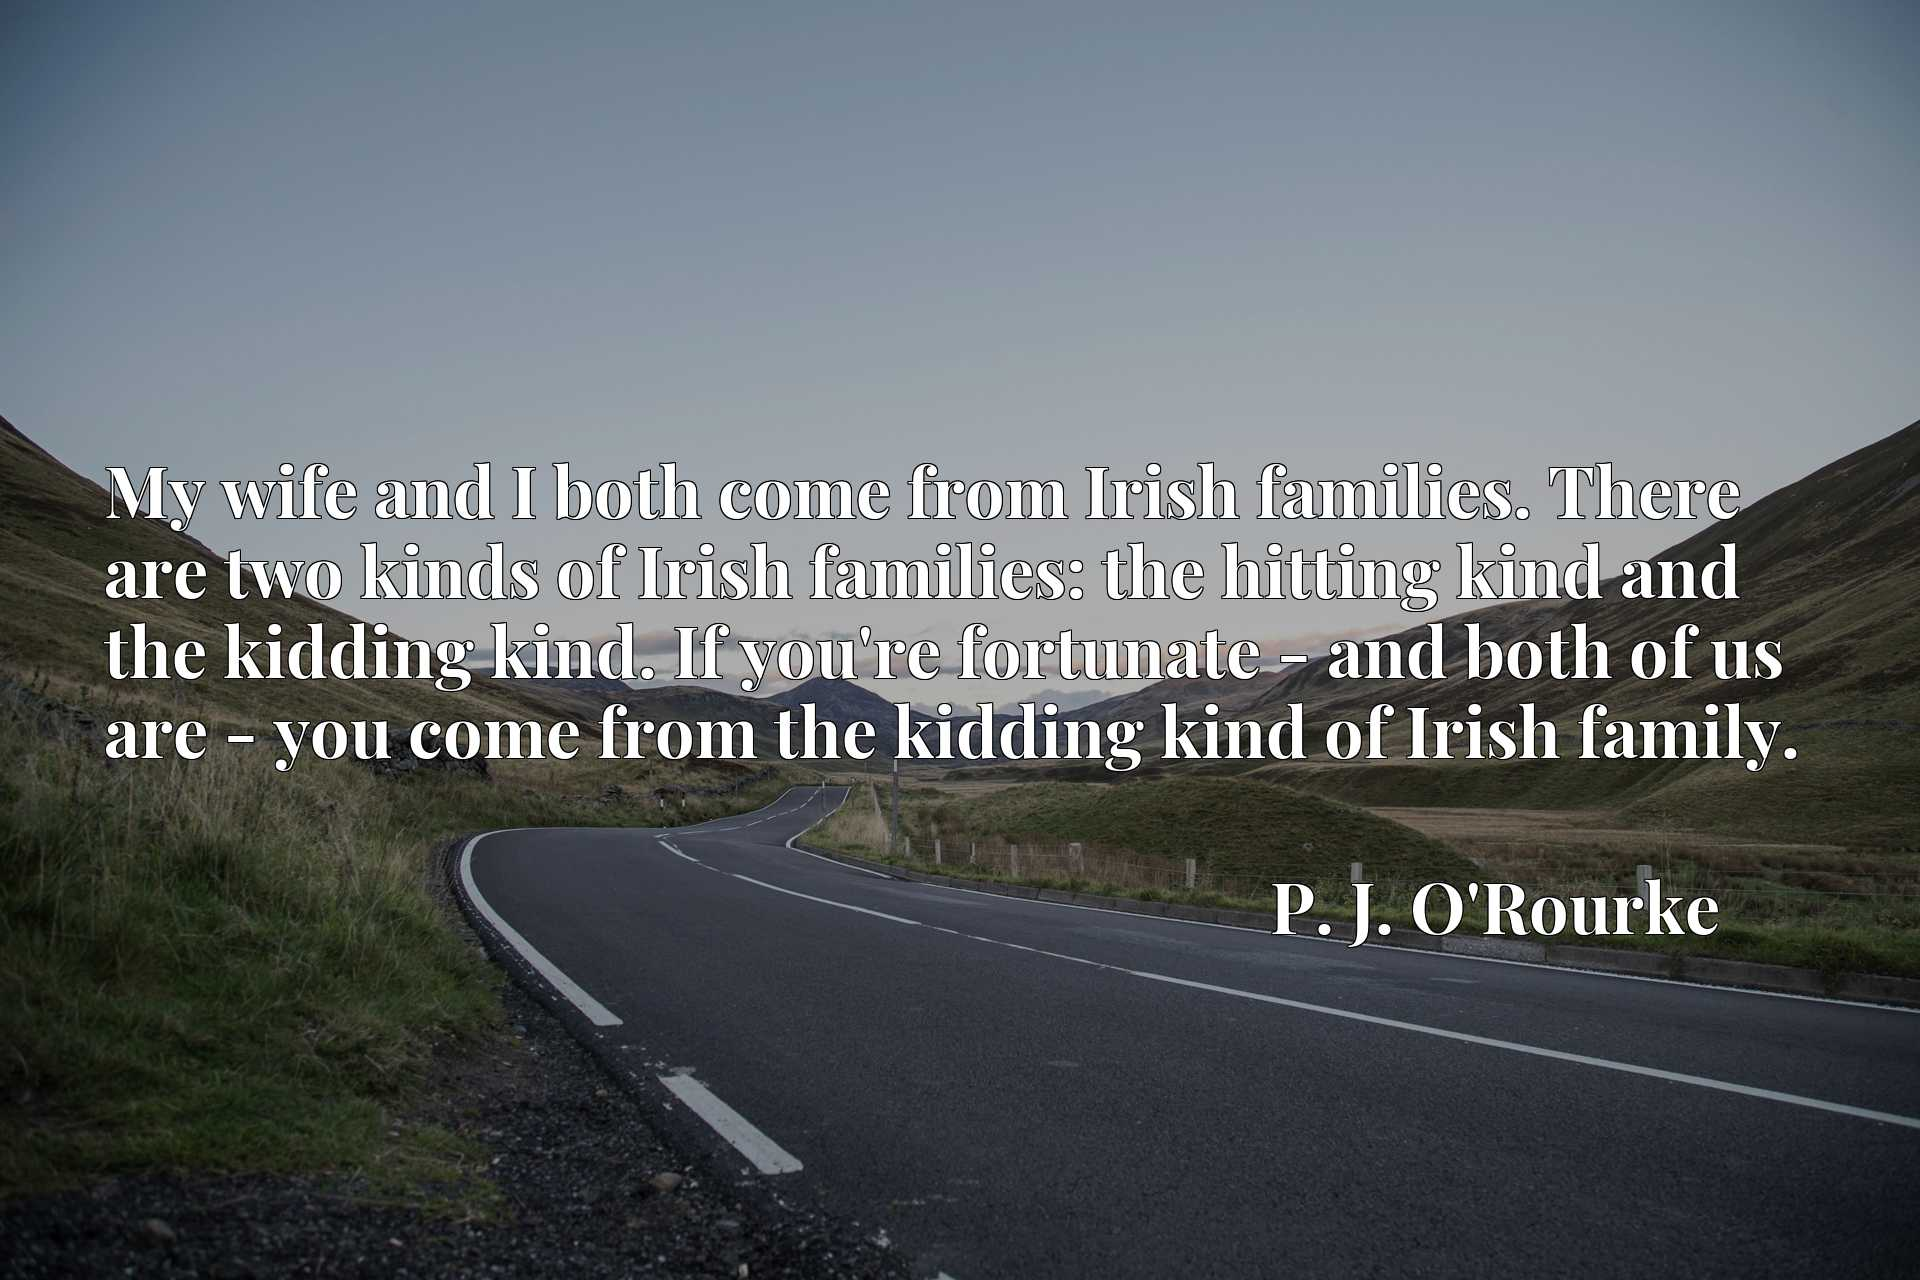 My wife and I both come from Irish families. There are two kinds of Irish families: the hitting kind and the kidding kind. If you're fortunate - and both of us are - you come from the kidding kind of Irish family.